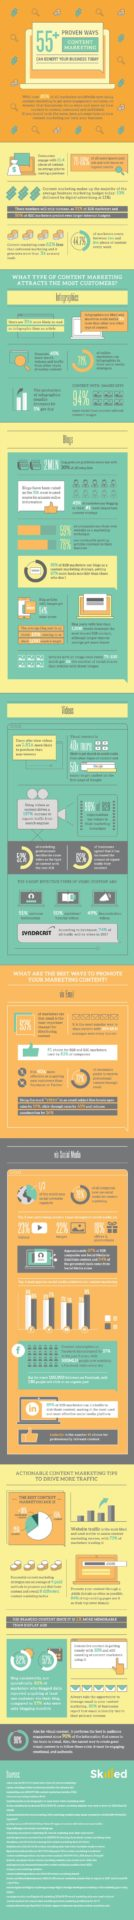 55 Proven Ways Content Marketing Strategy can Benefit your E-Commerce